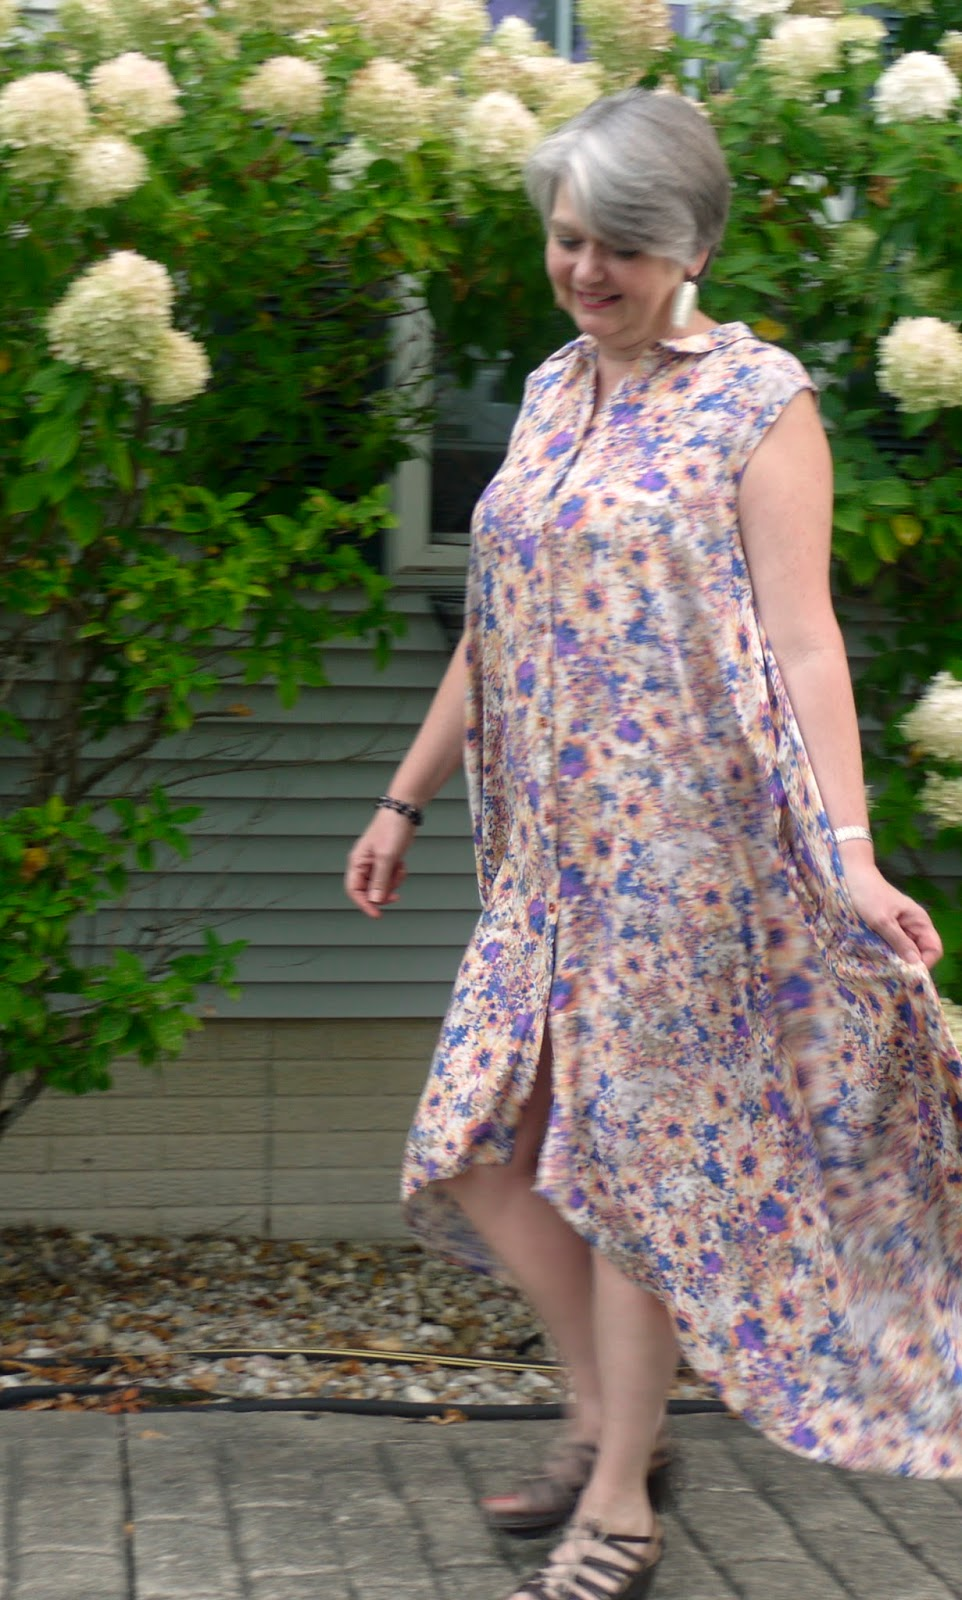 f6065470e435 End of Summer Dresses with McCalls 7565 - SewBaby News